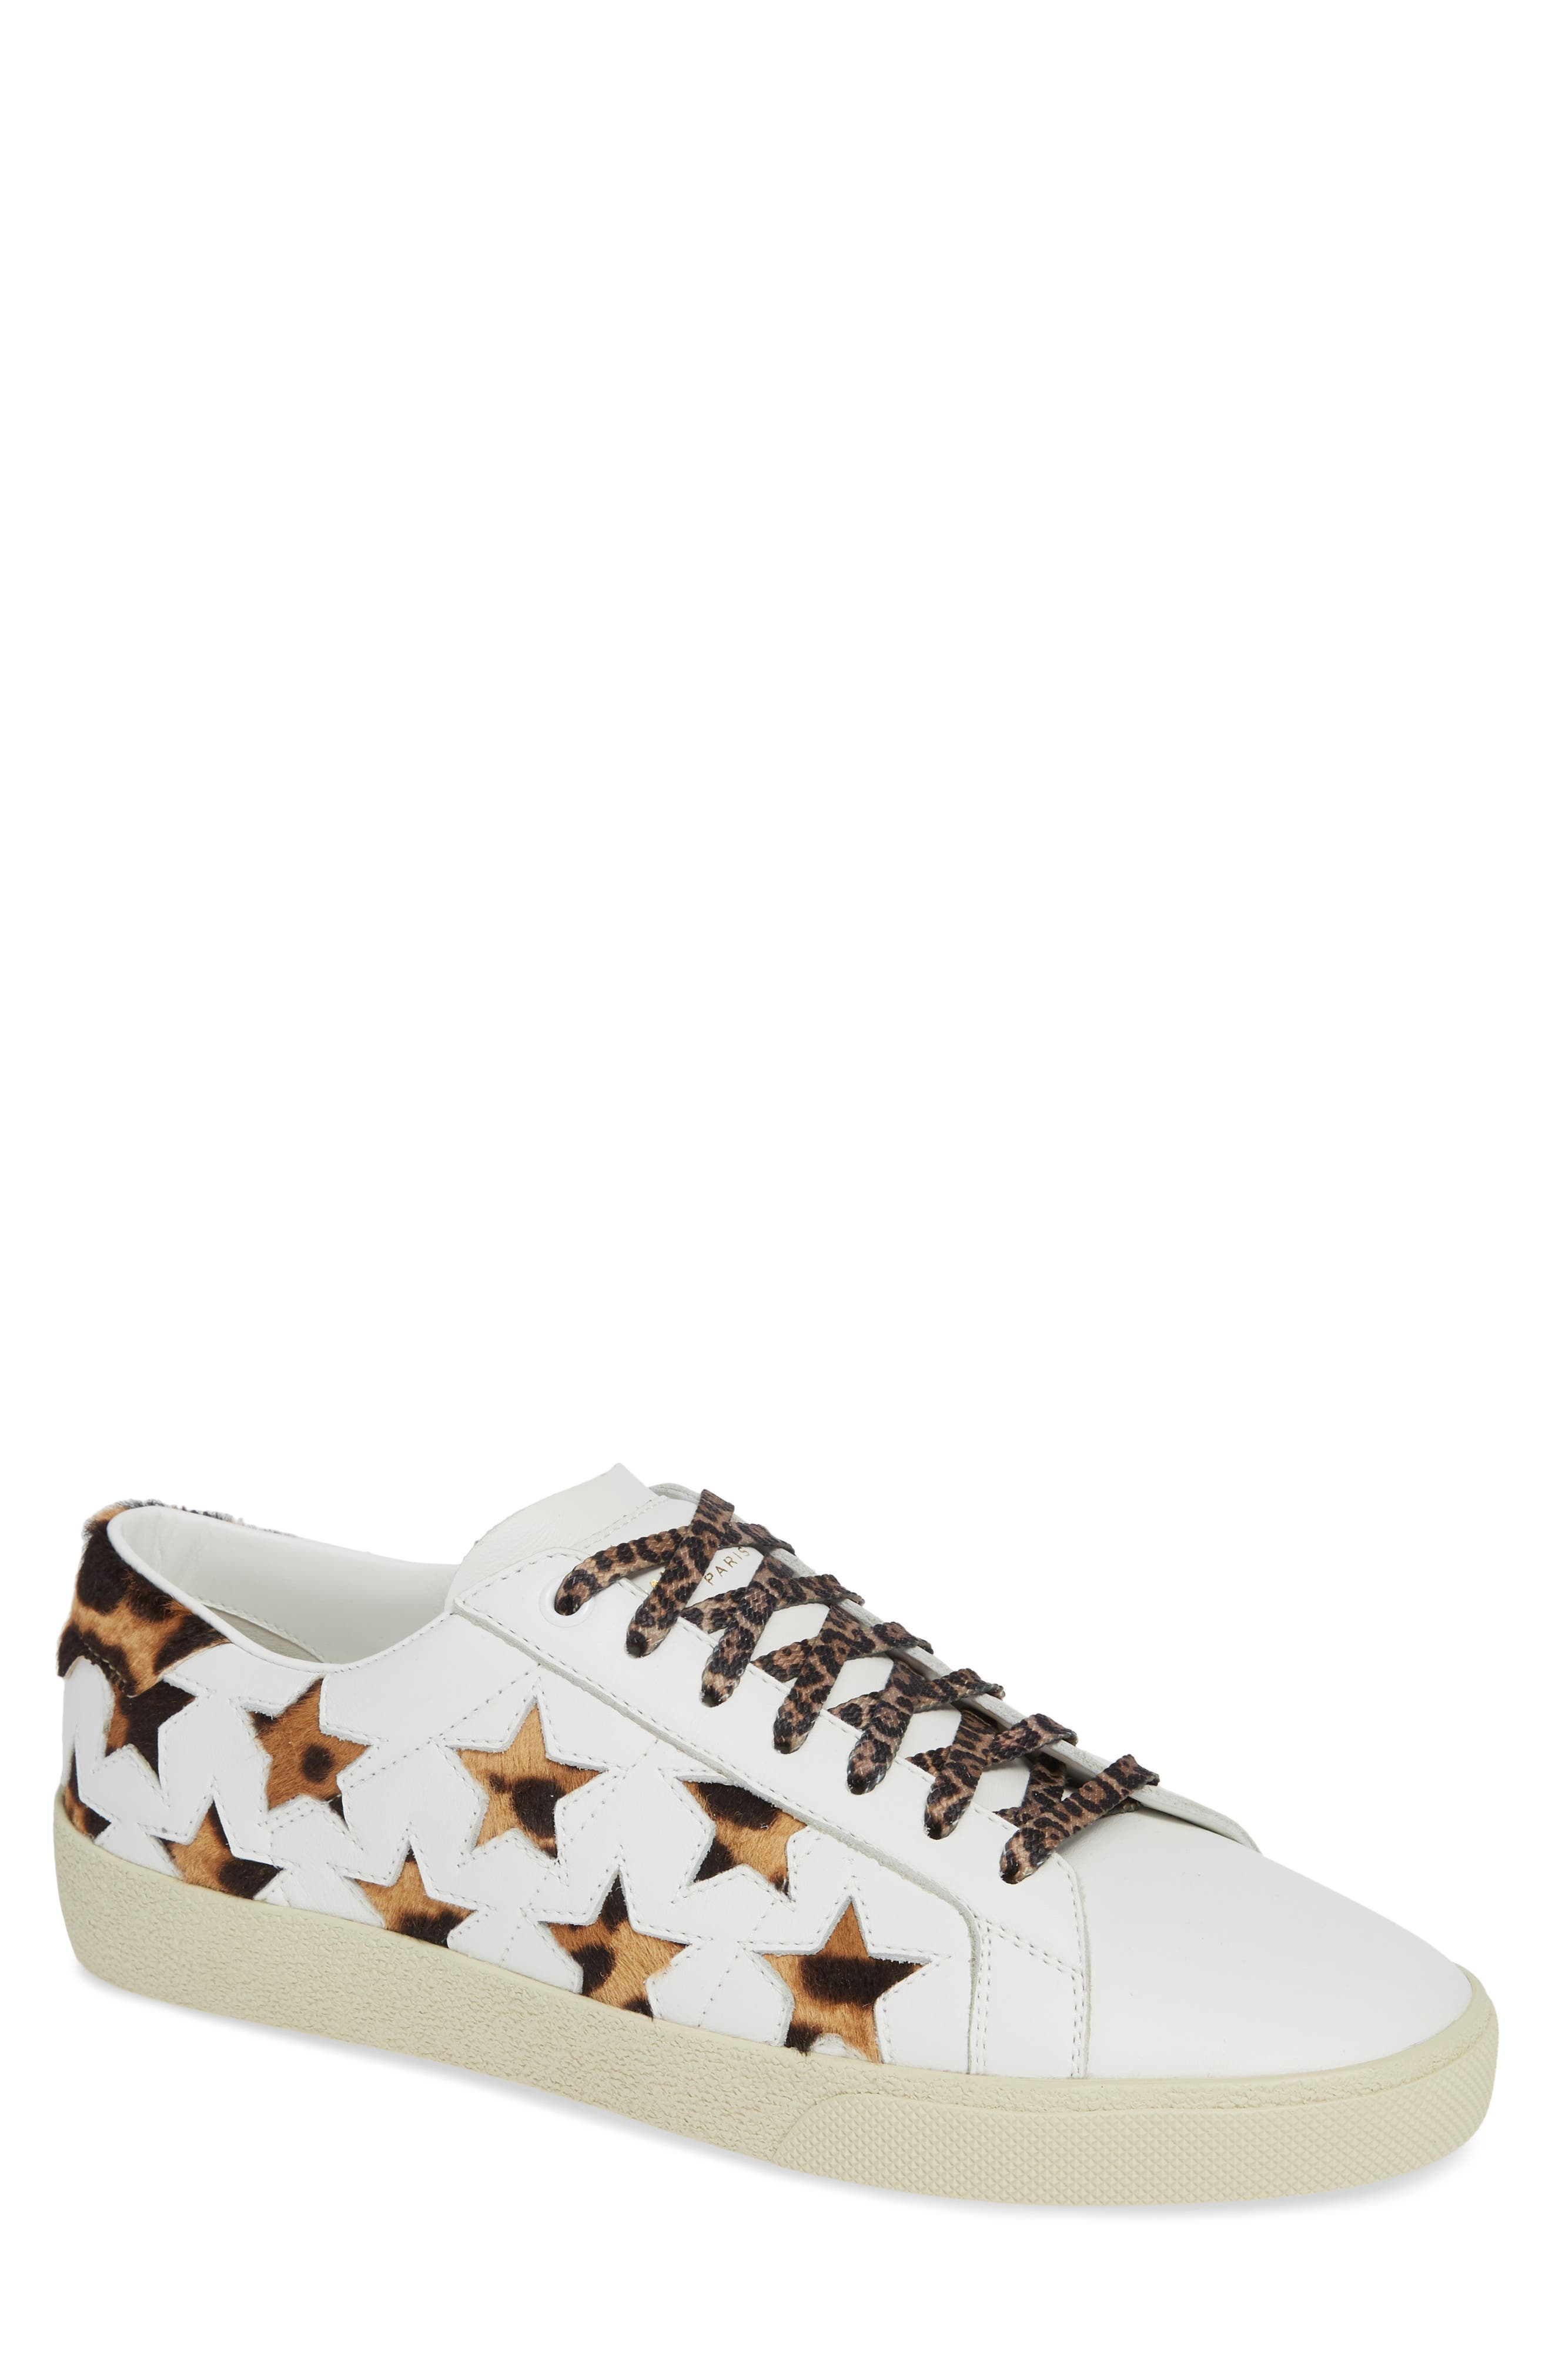 SL06 Genuine Calf Hair Sneaker,                             Main thumbnail 1, color,                             BLANC OPTIQUE/ CHAD